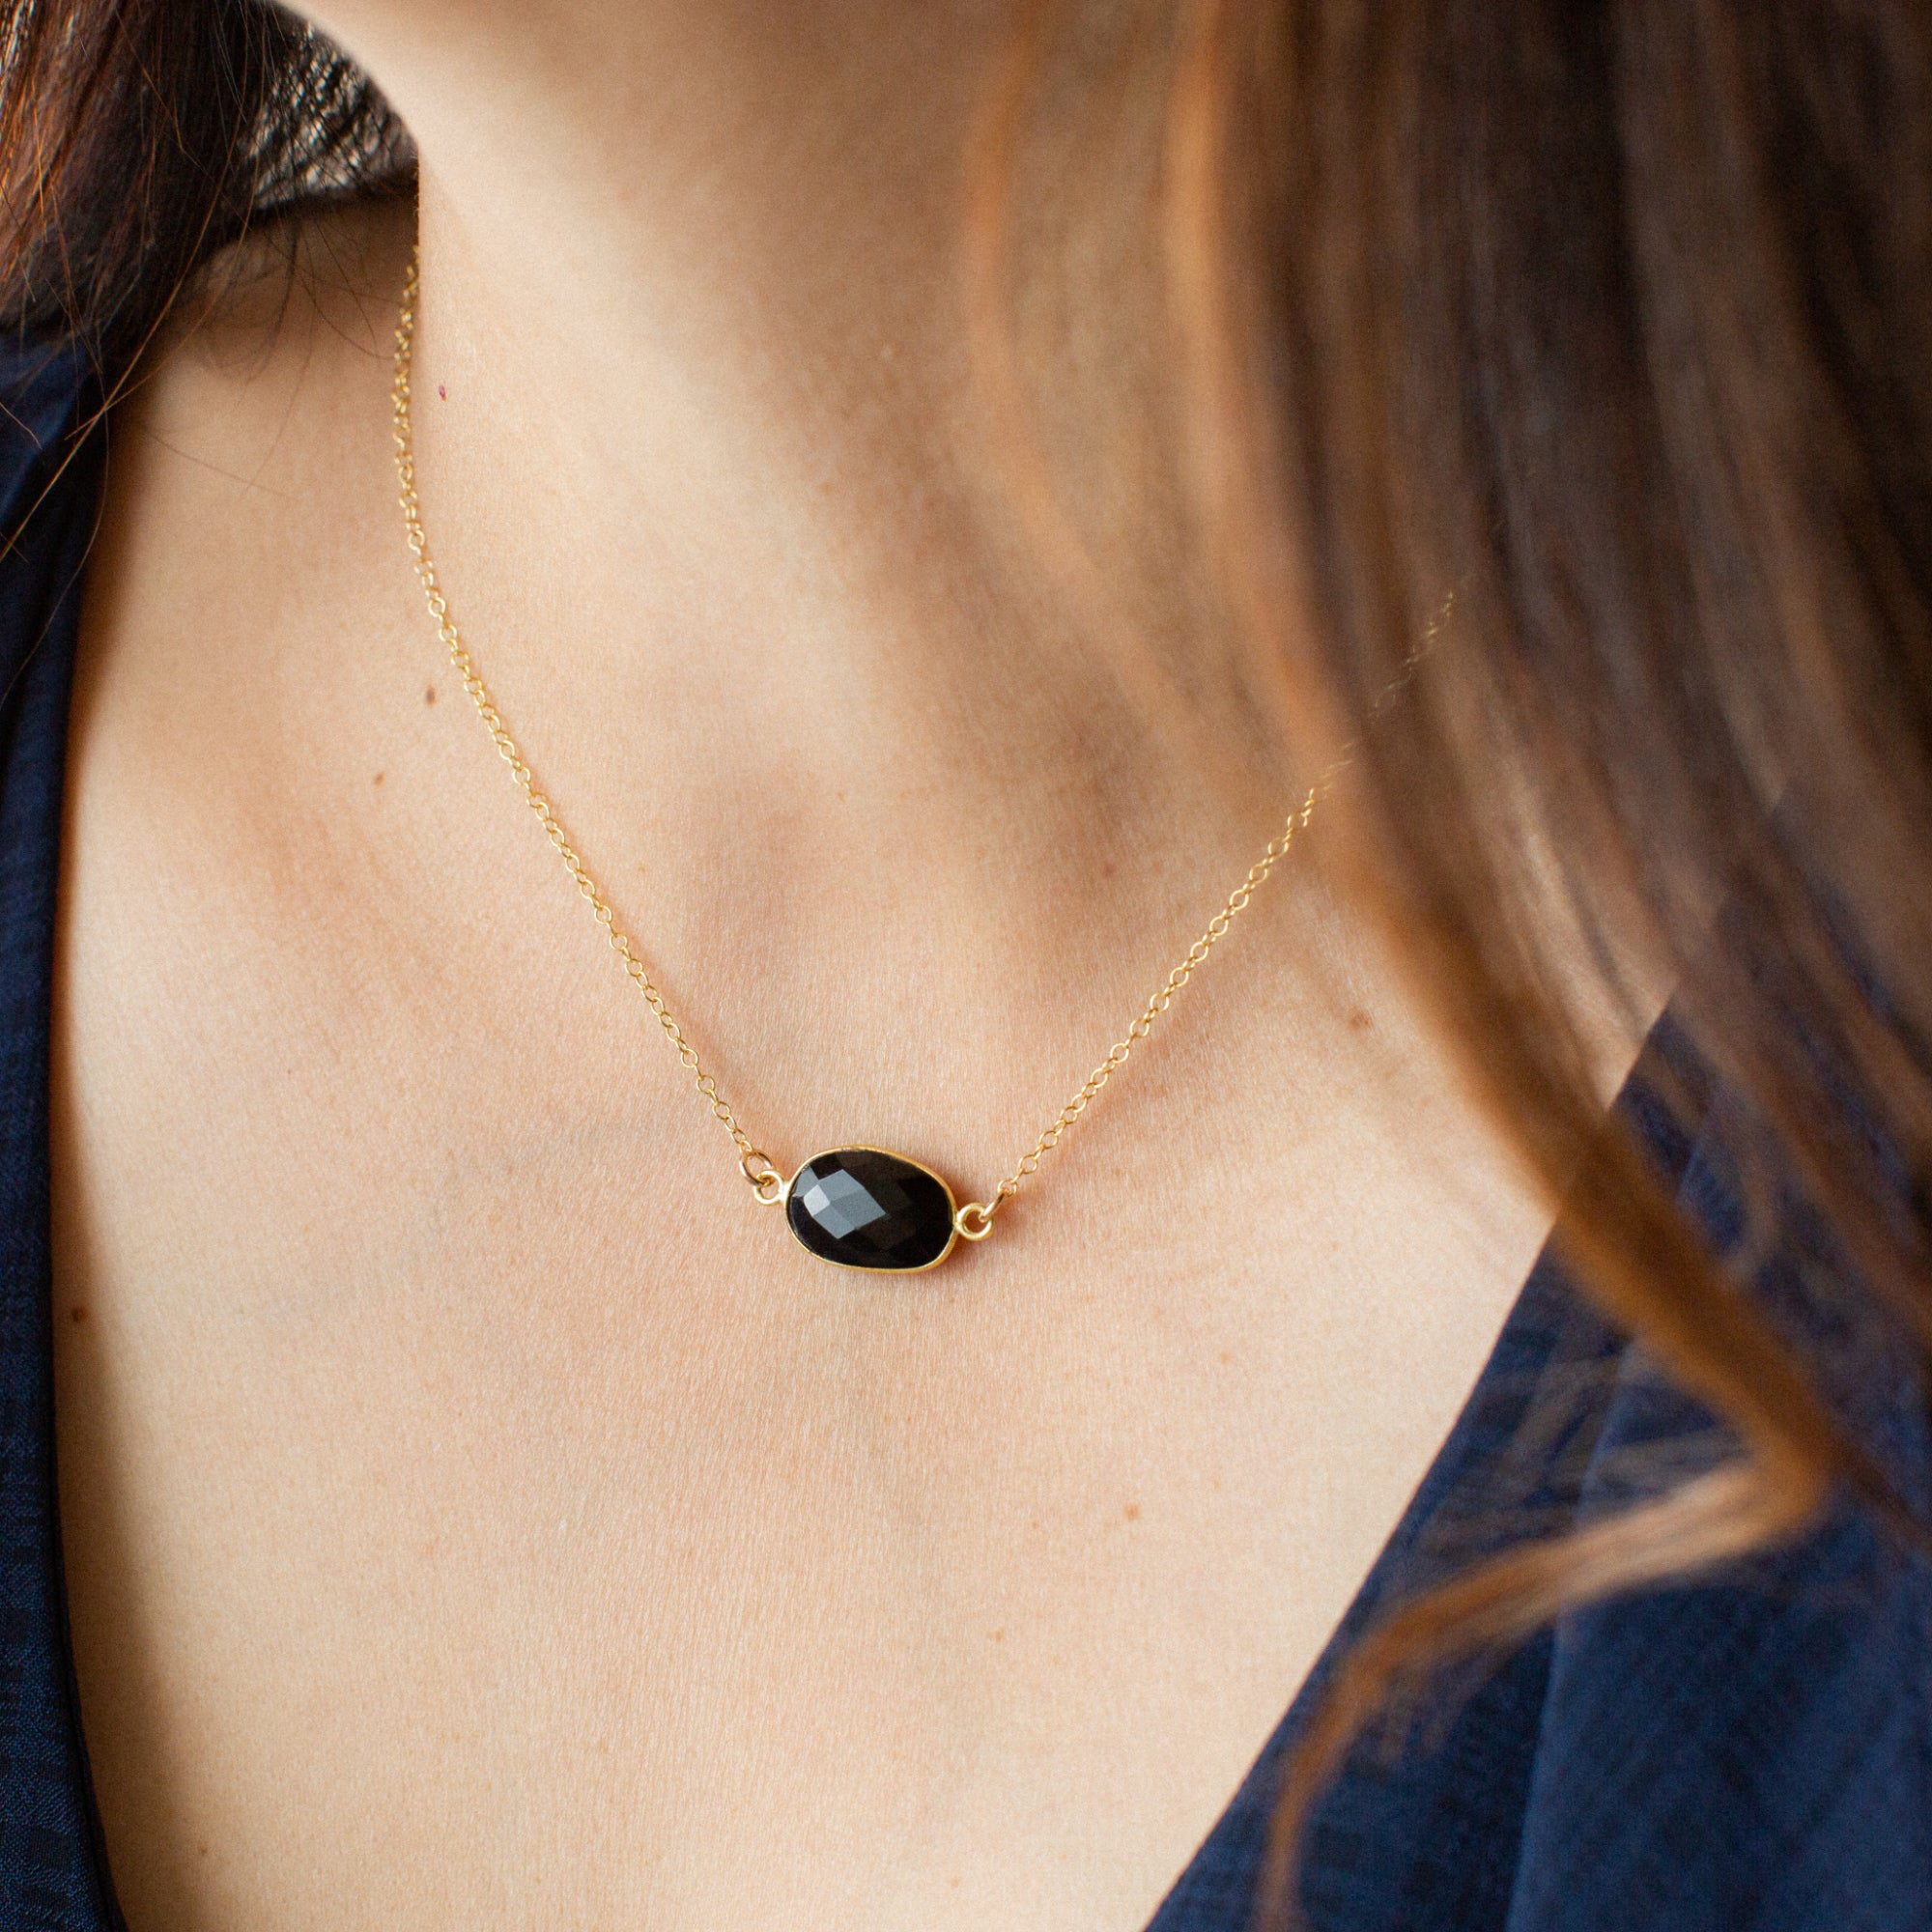 Close-up of Woman in Blue Shirt Wearing Oval-shaped Spinel and Gold Necklace 'I Am Badass' Model Photo by Asha Blooms